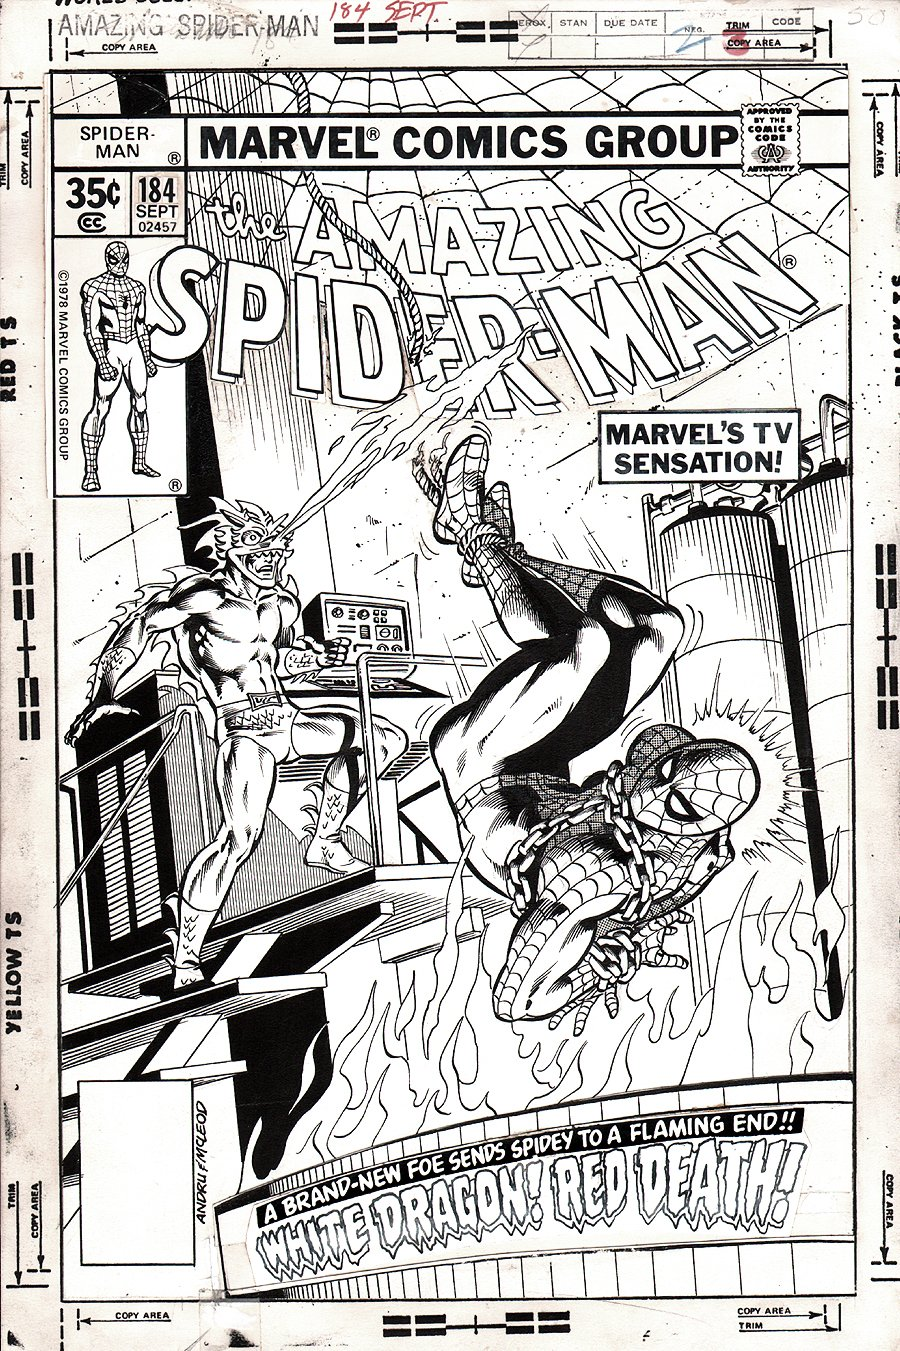 Amazing Spider-Man 184 Cover  SOLD SOLD SOLD!